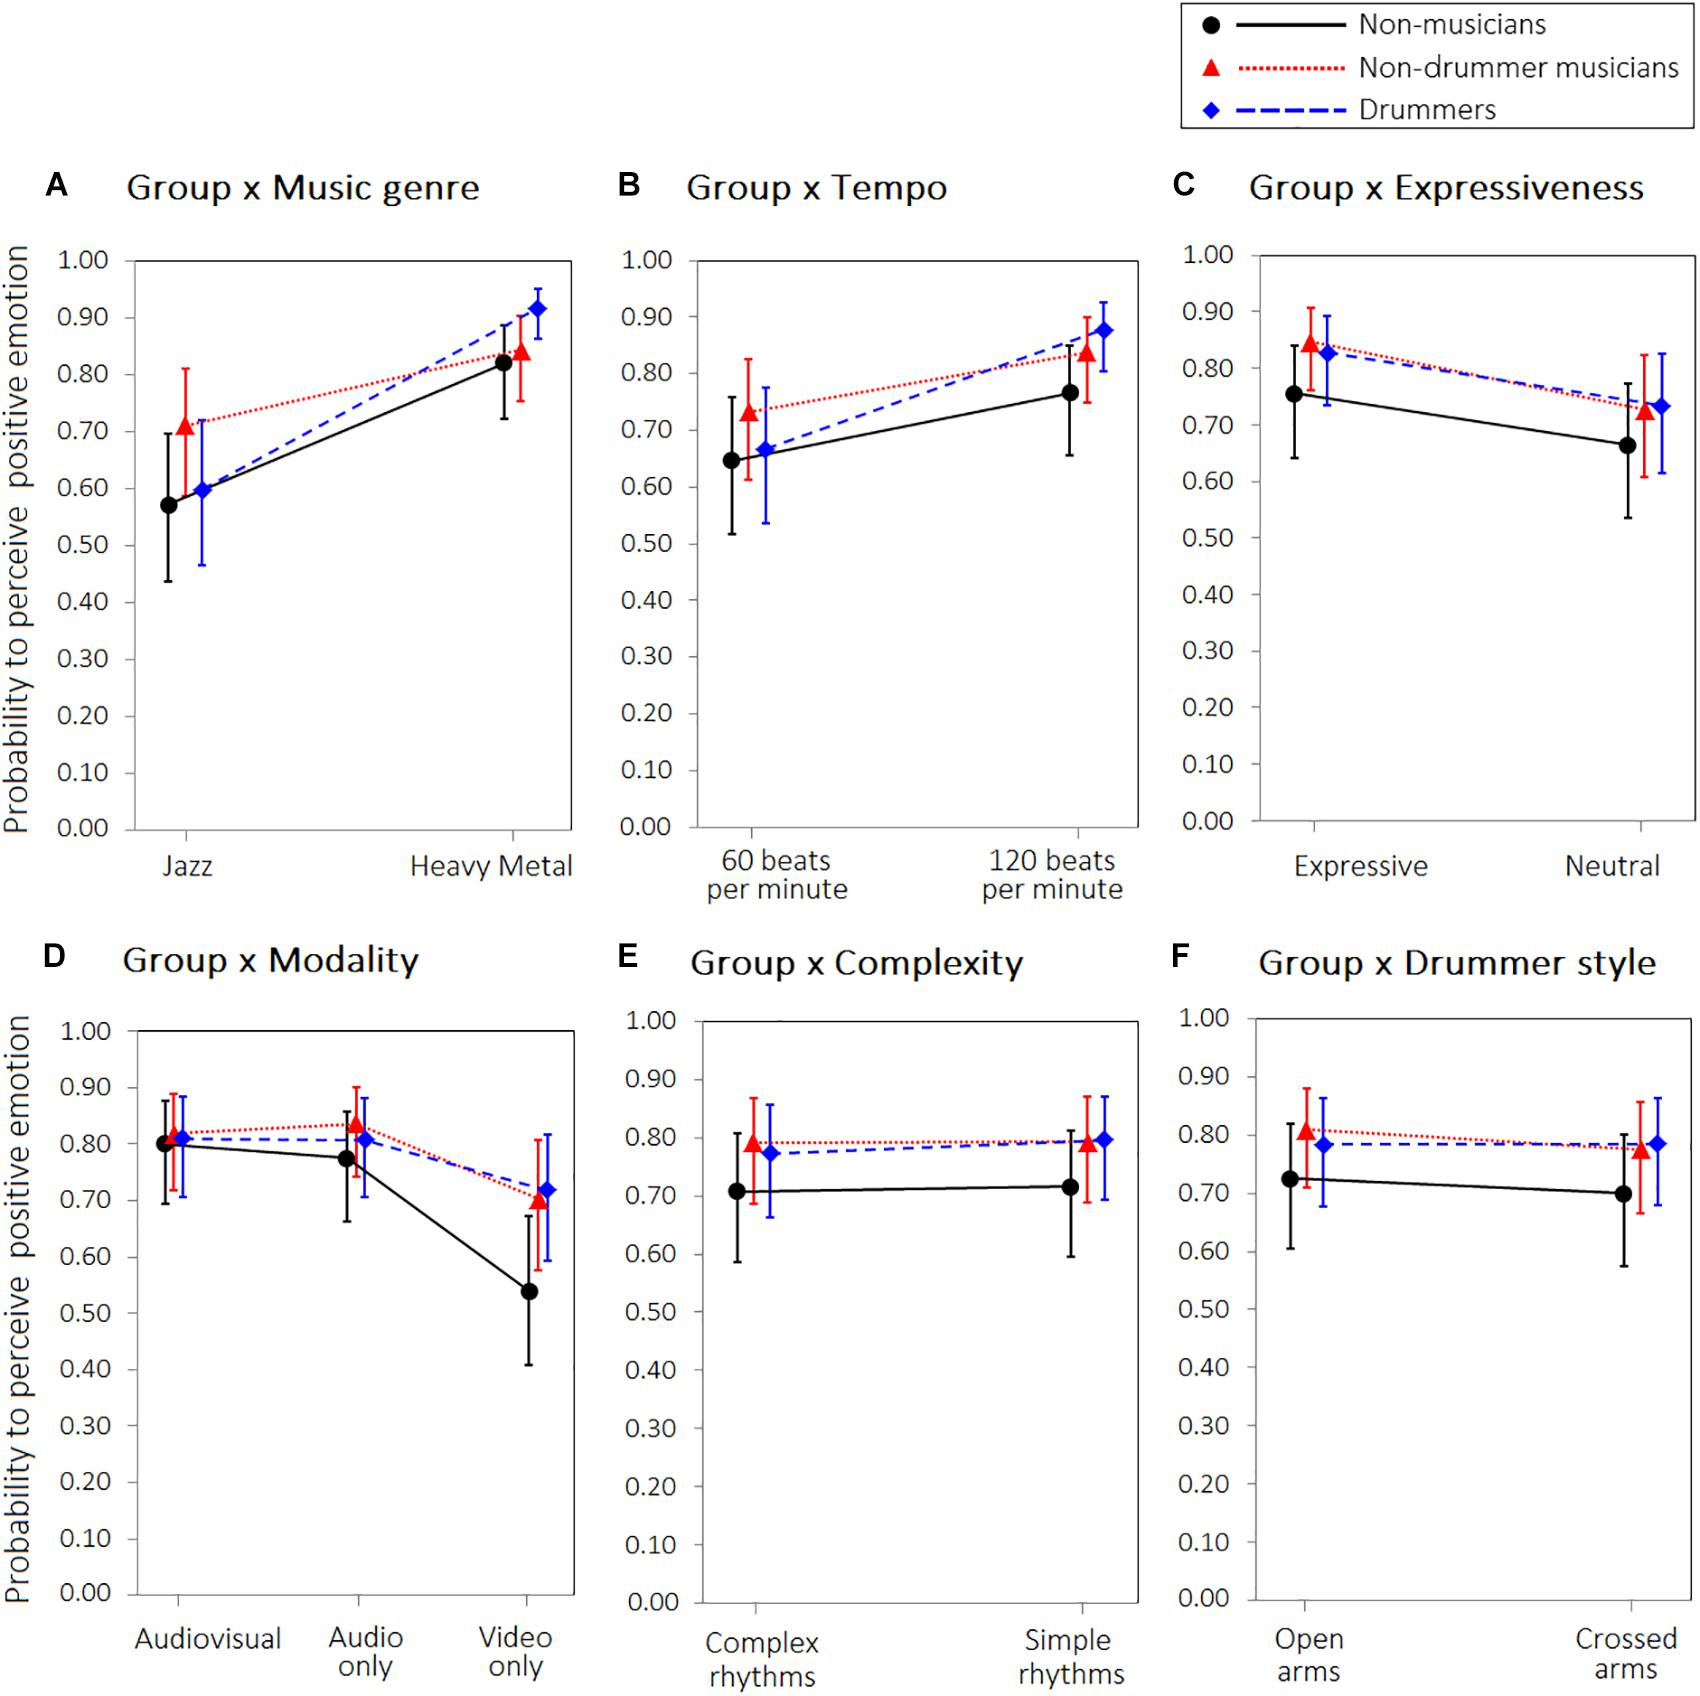 Frontiers | Effect of Long-Term Music Training on Emotion